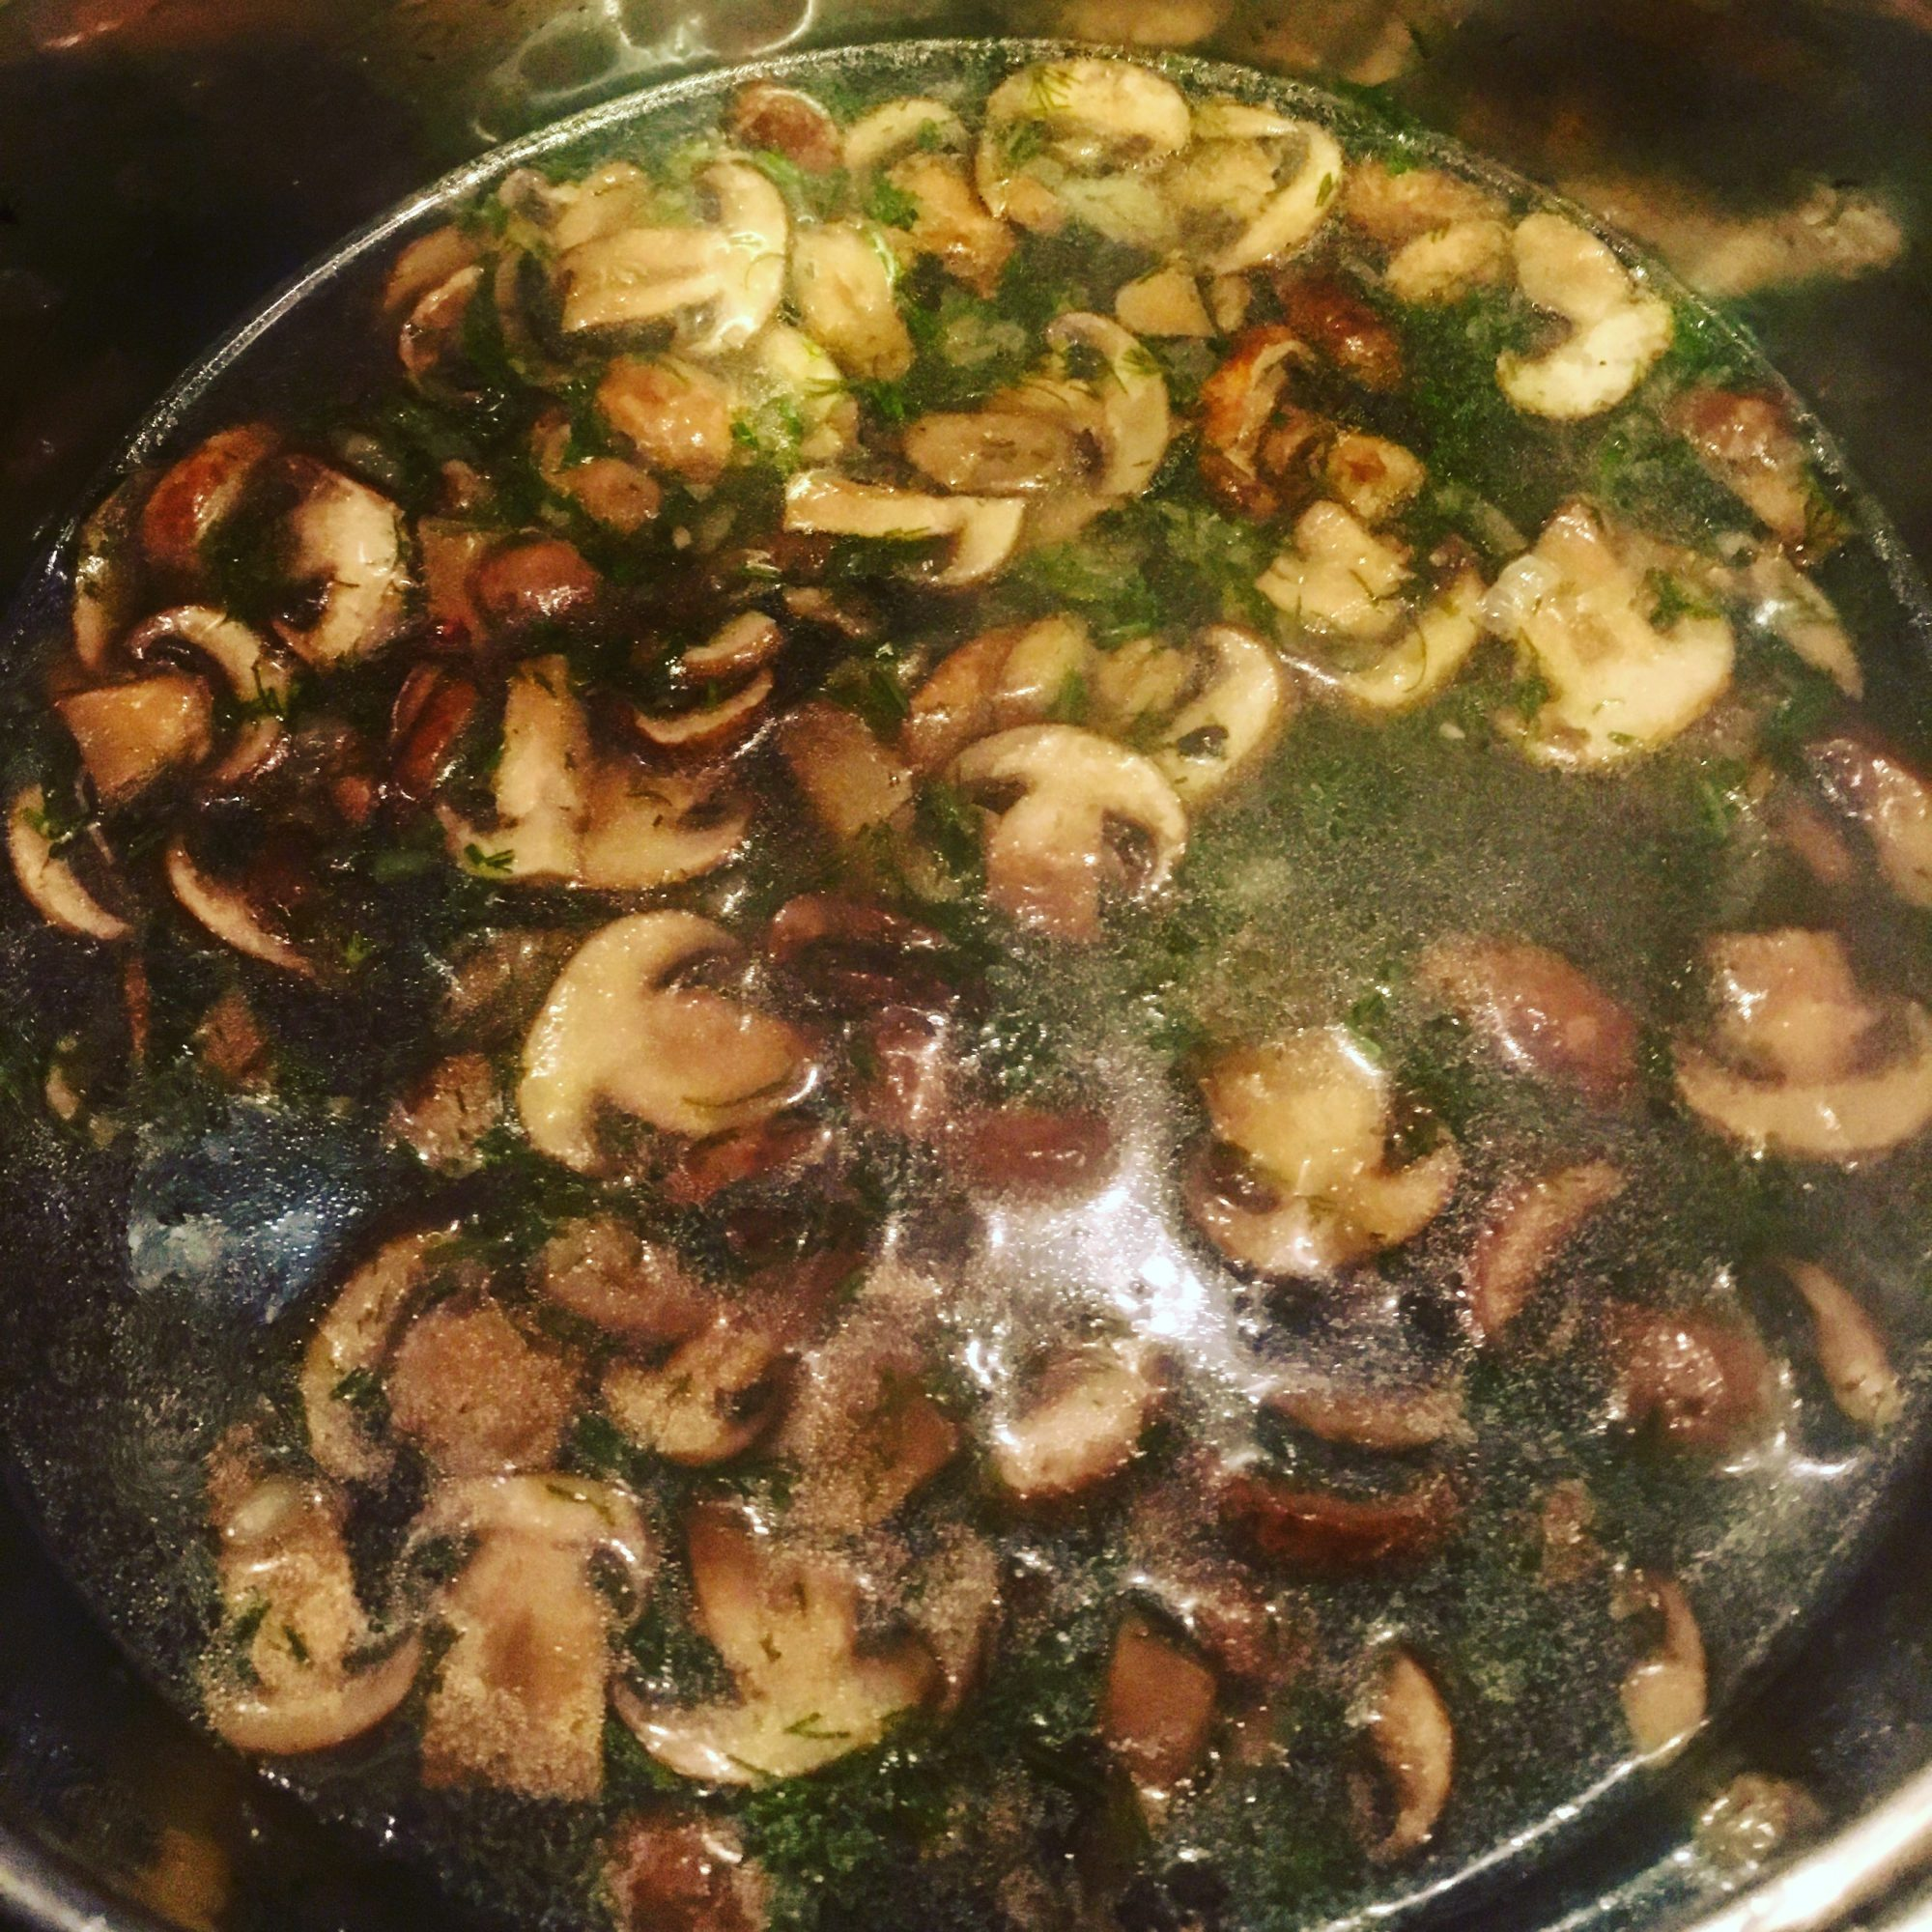 This mushroom soup is perfect for gloomy days